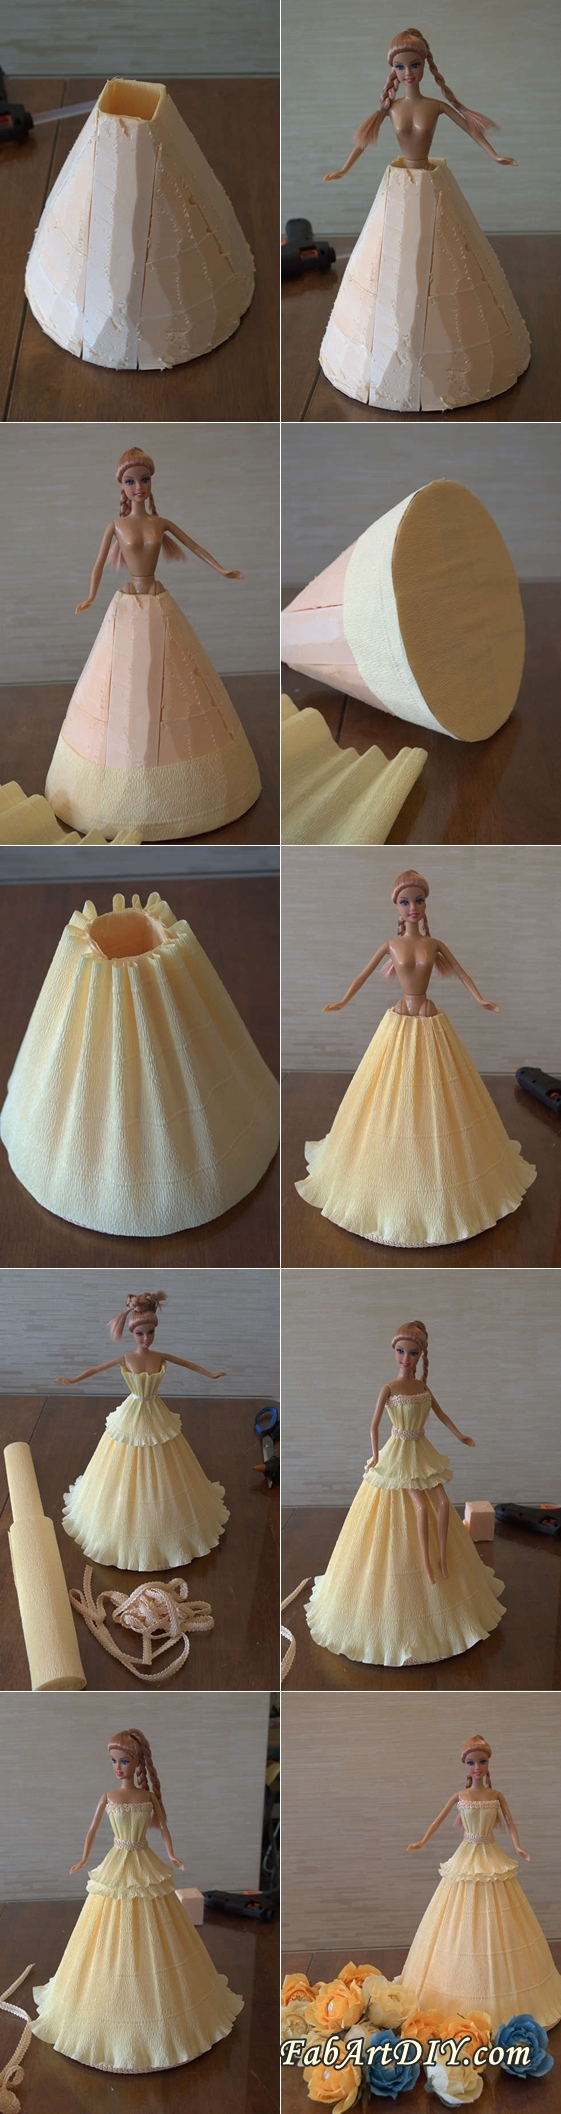 DIY Crepe Paper Barbie Dress Flower Bouquet